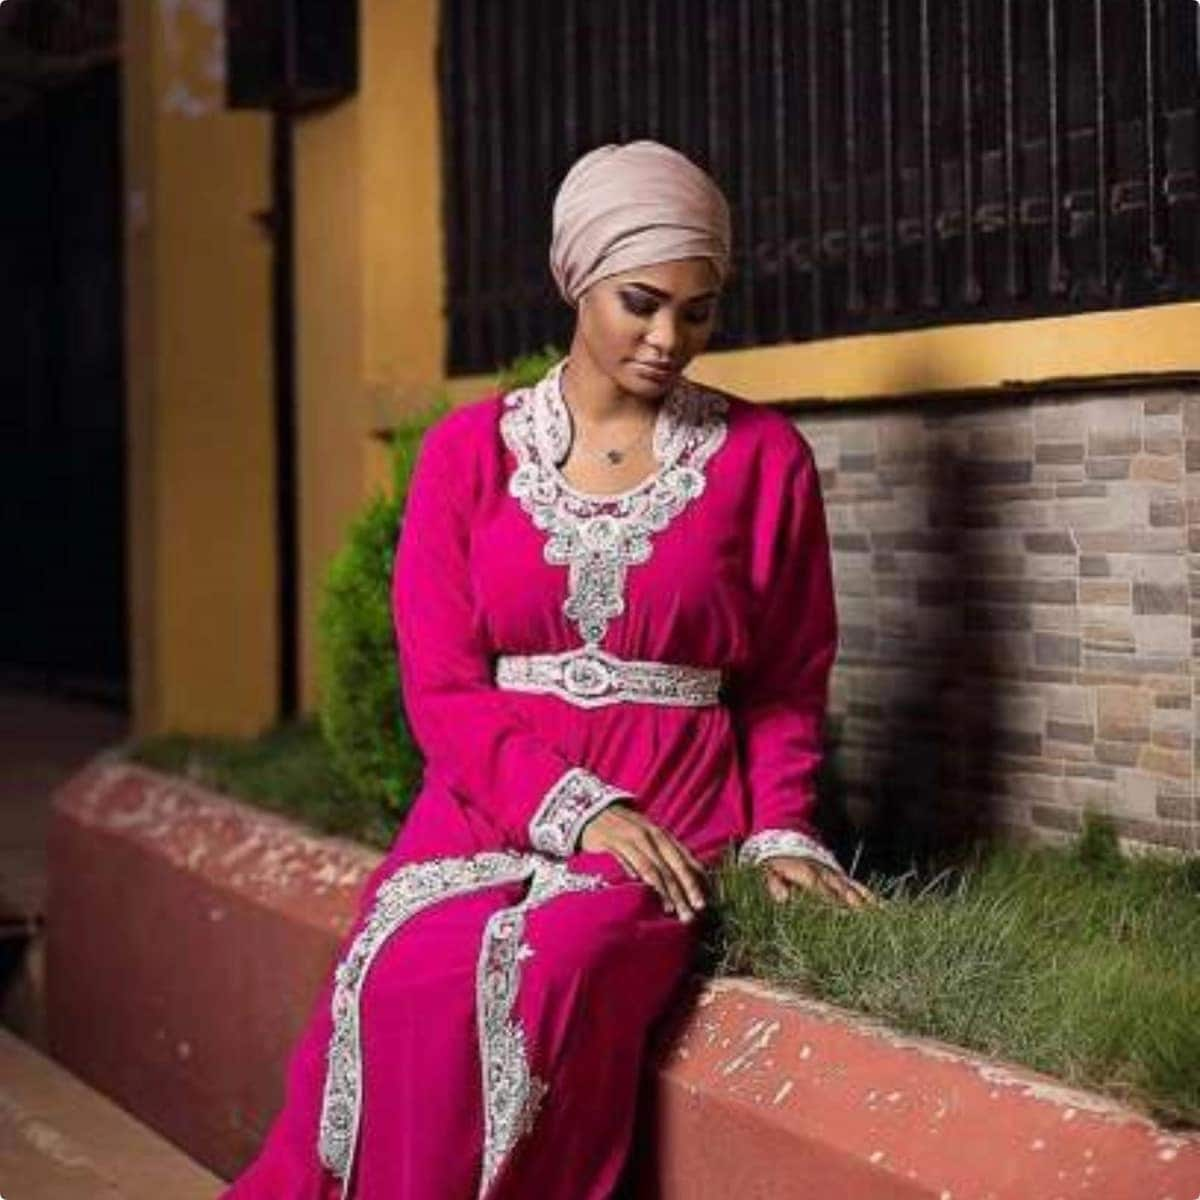 Photos of Majeed Waris' wife who he is divorcing